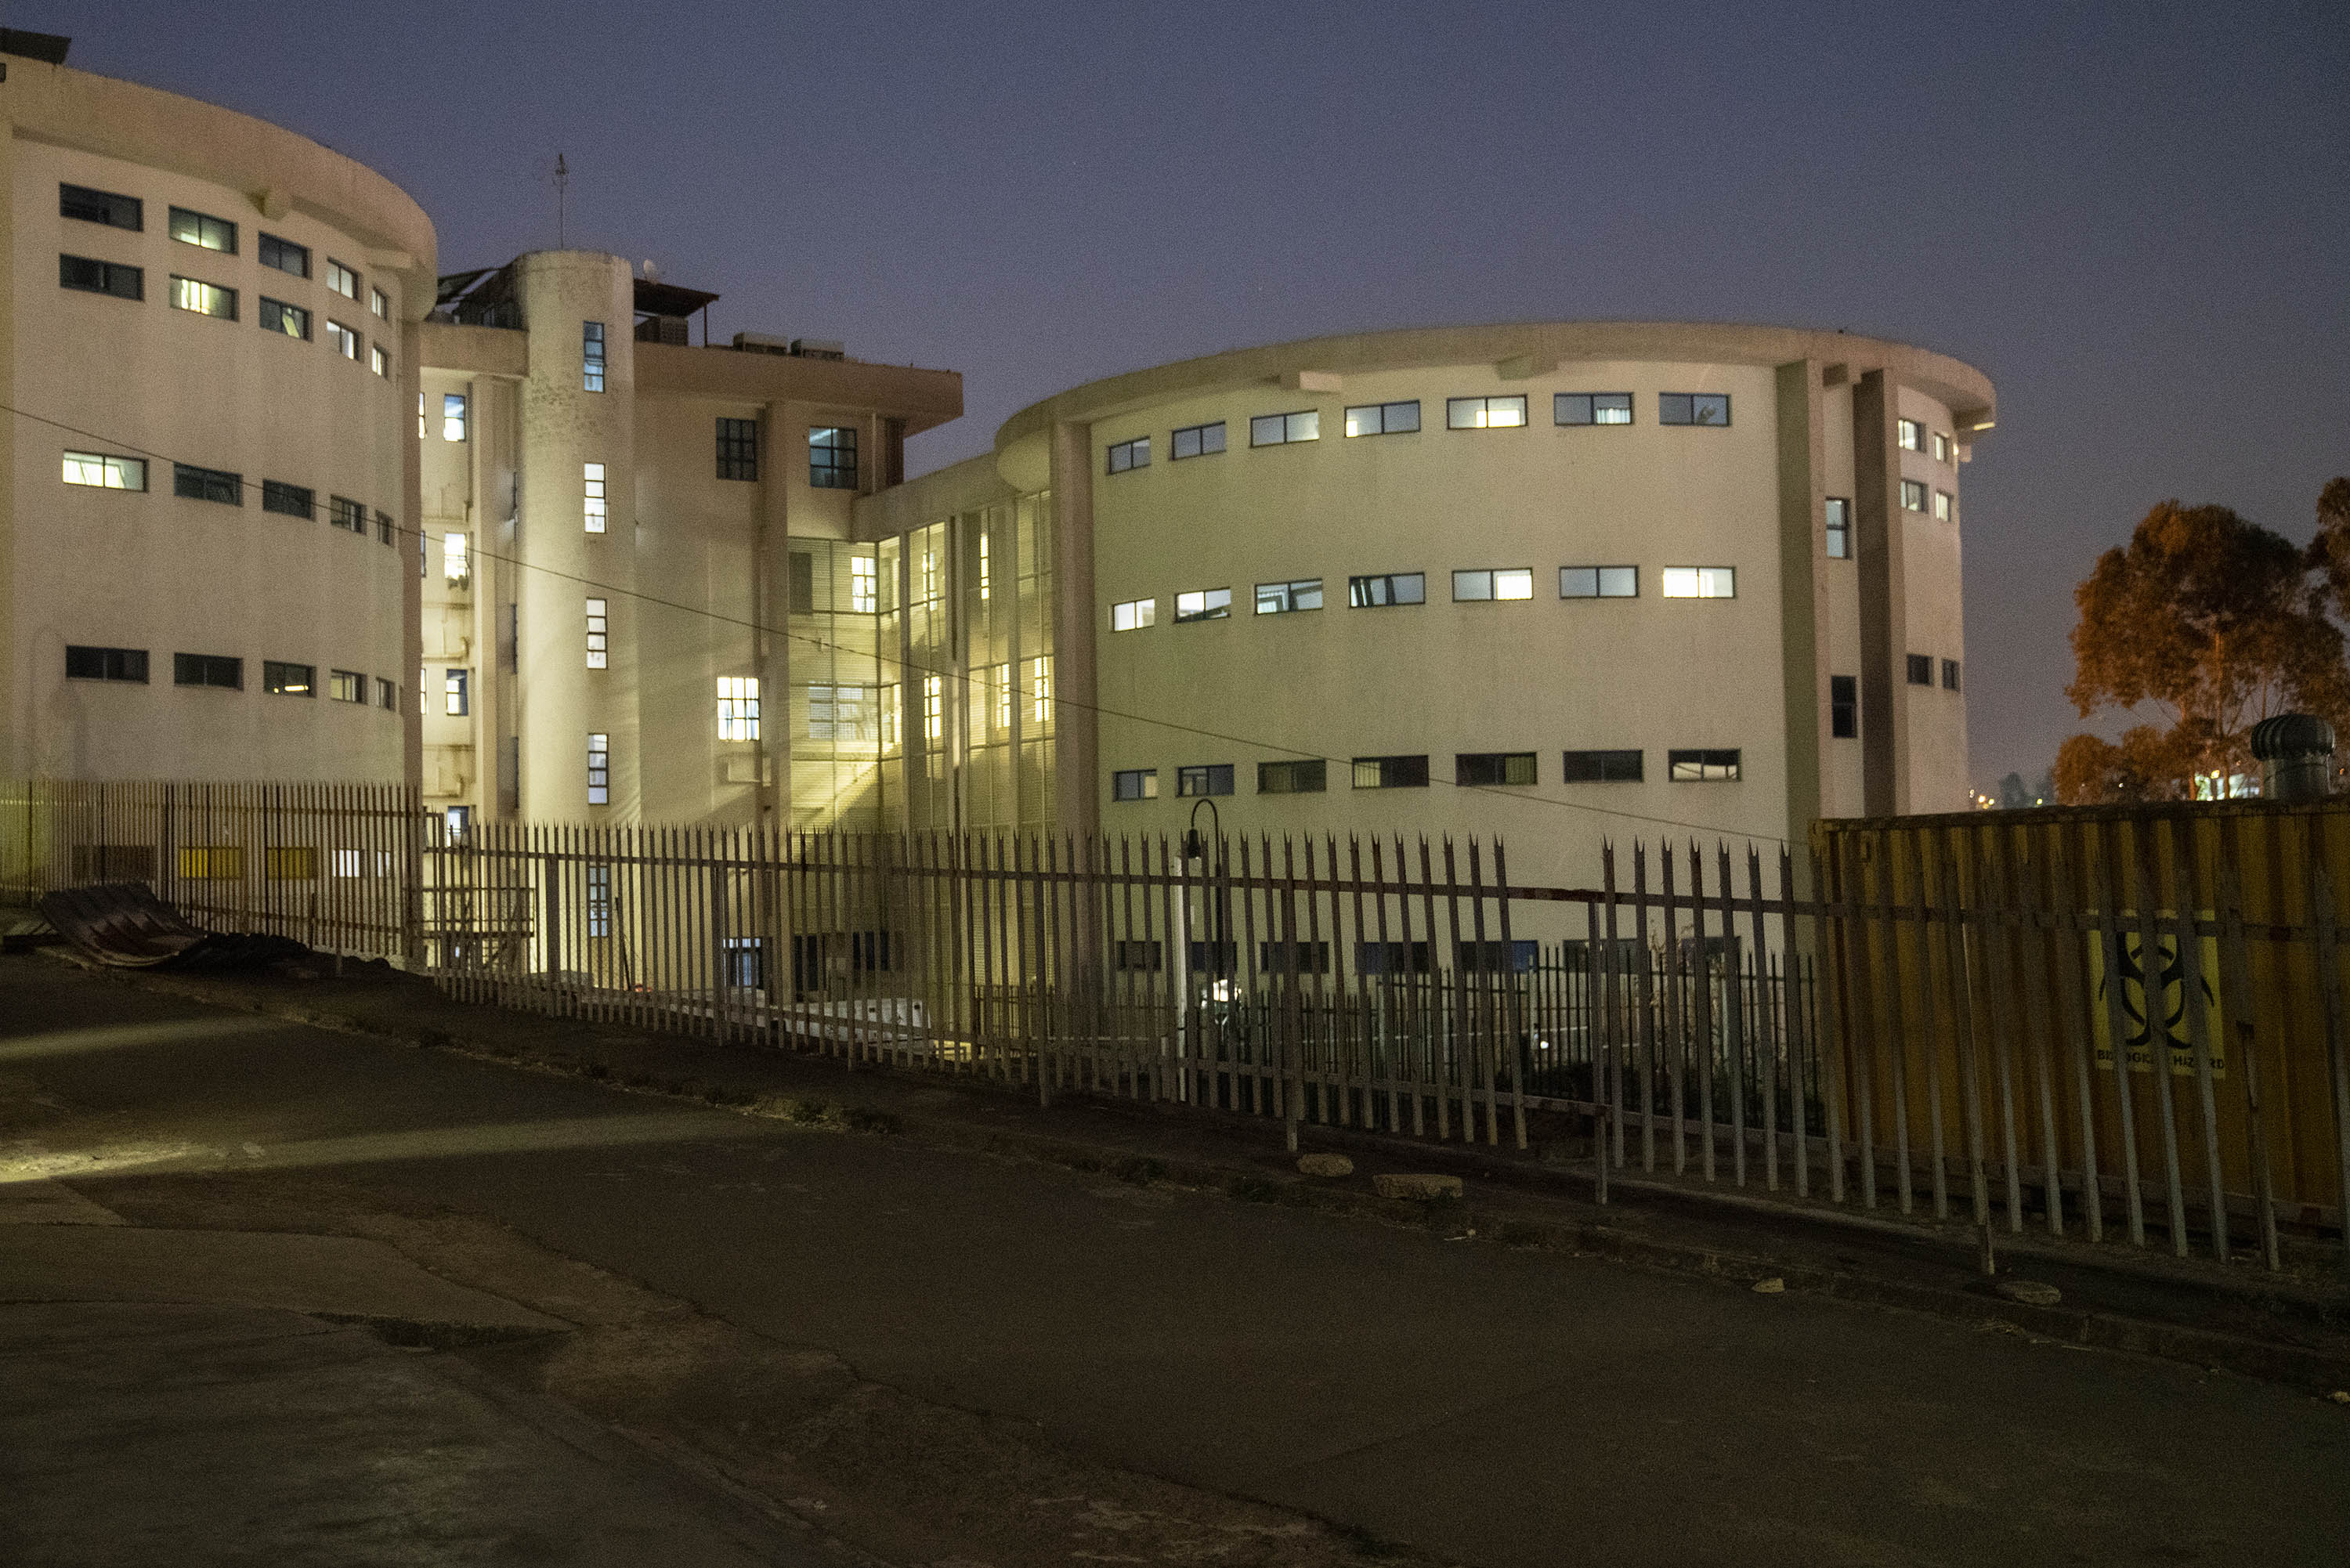 7 August 2019: The Mbabane Government Hospital, the biggest in the country, is understaffed and experiencing shortages of medication, food and basics such as prescription notepads.